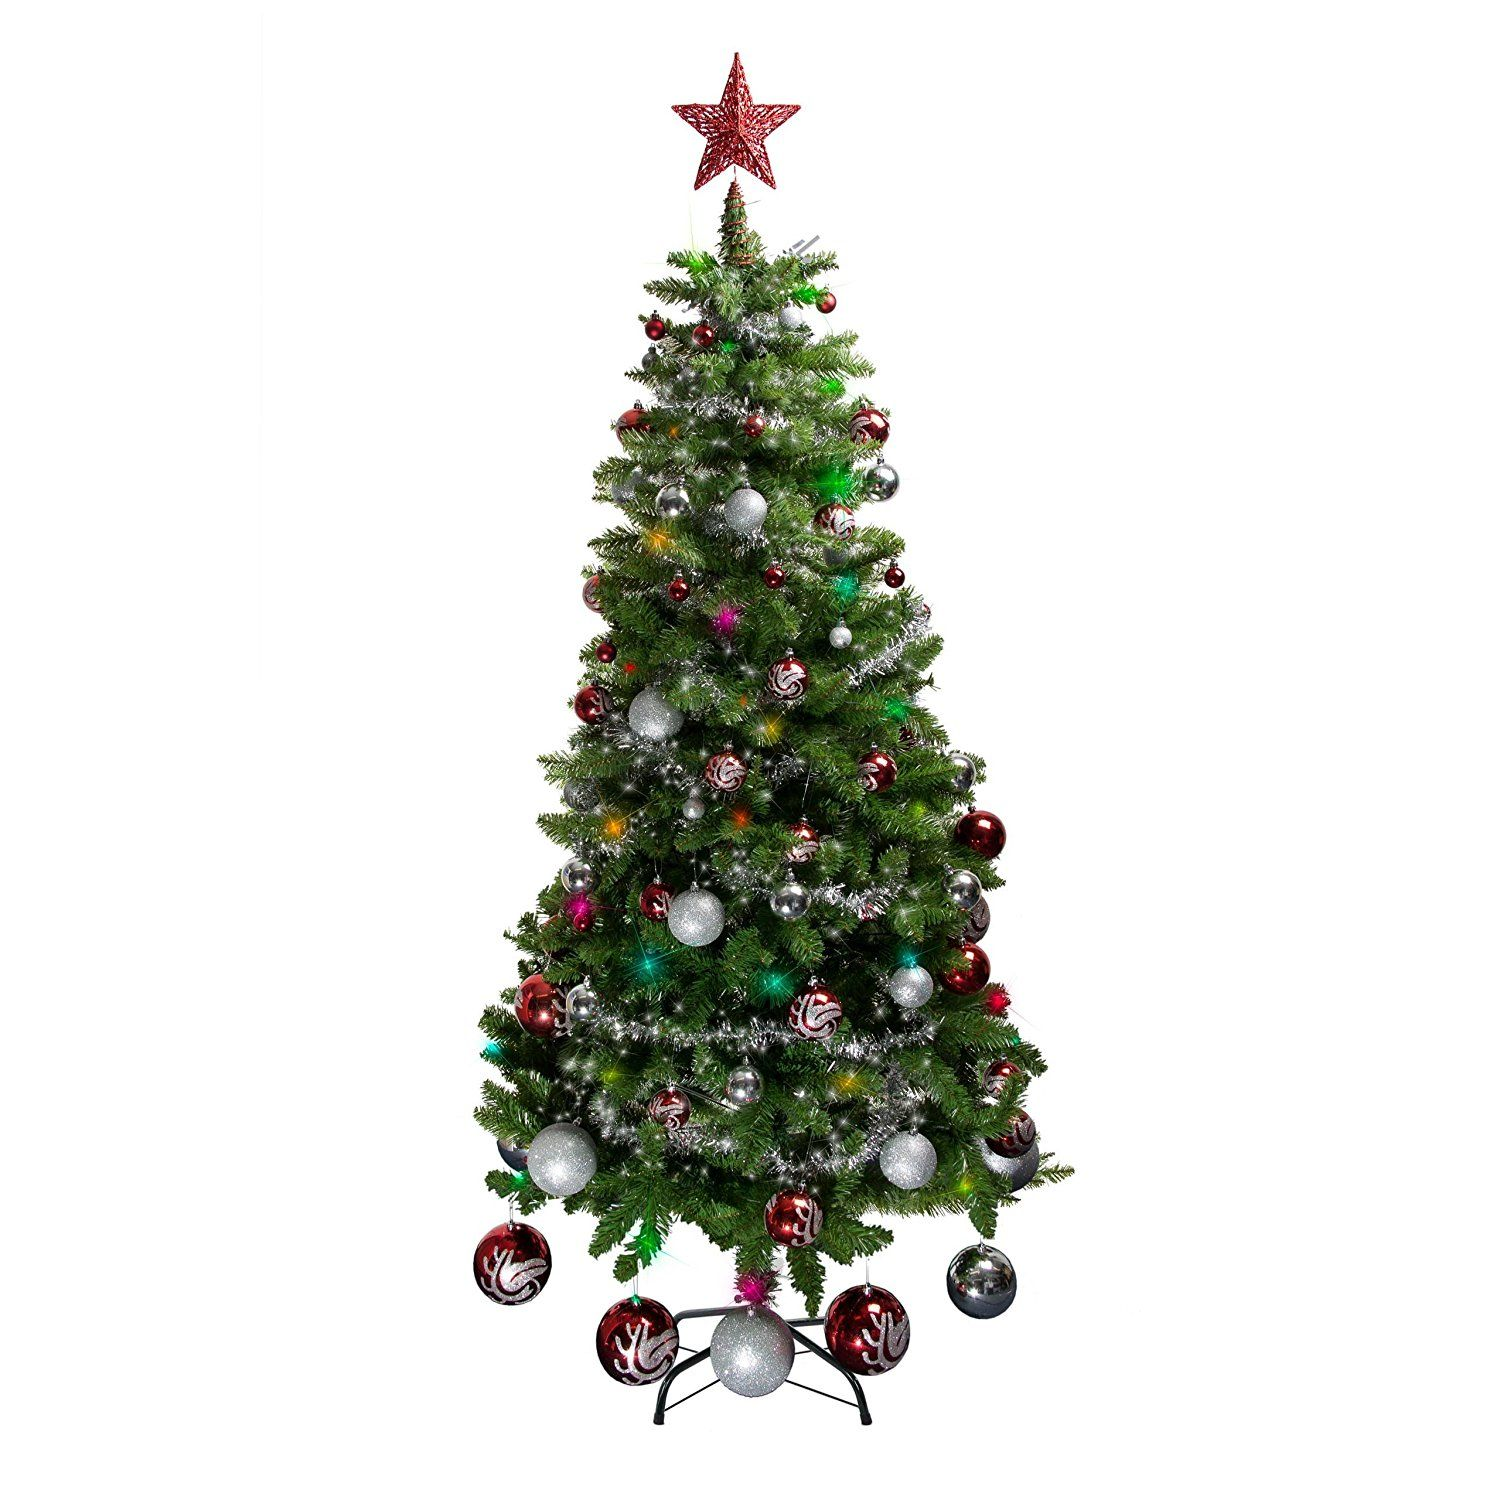 Artificial Christmas Trees Amazon Uk: 6ft Christmas Tree With Stand (173cm Artificial Xmas Tree